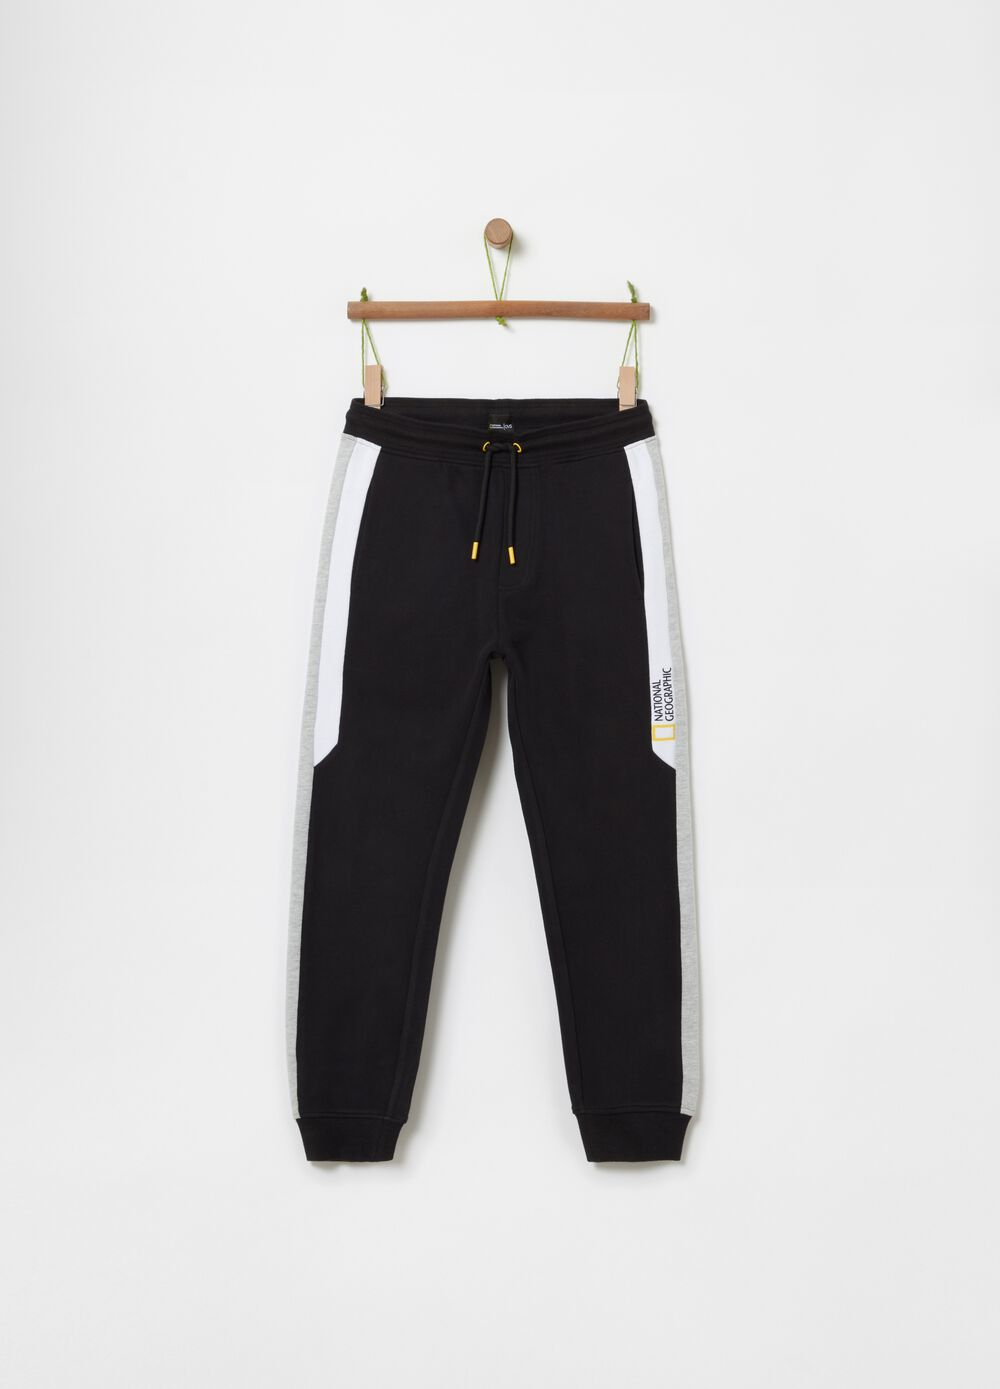 Joggers with National Geographic fleece